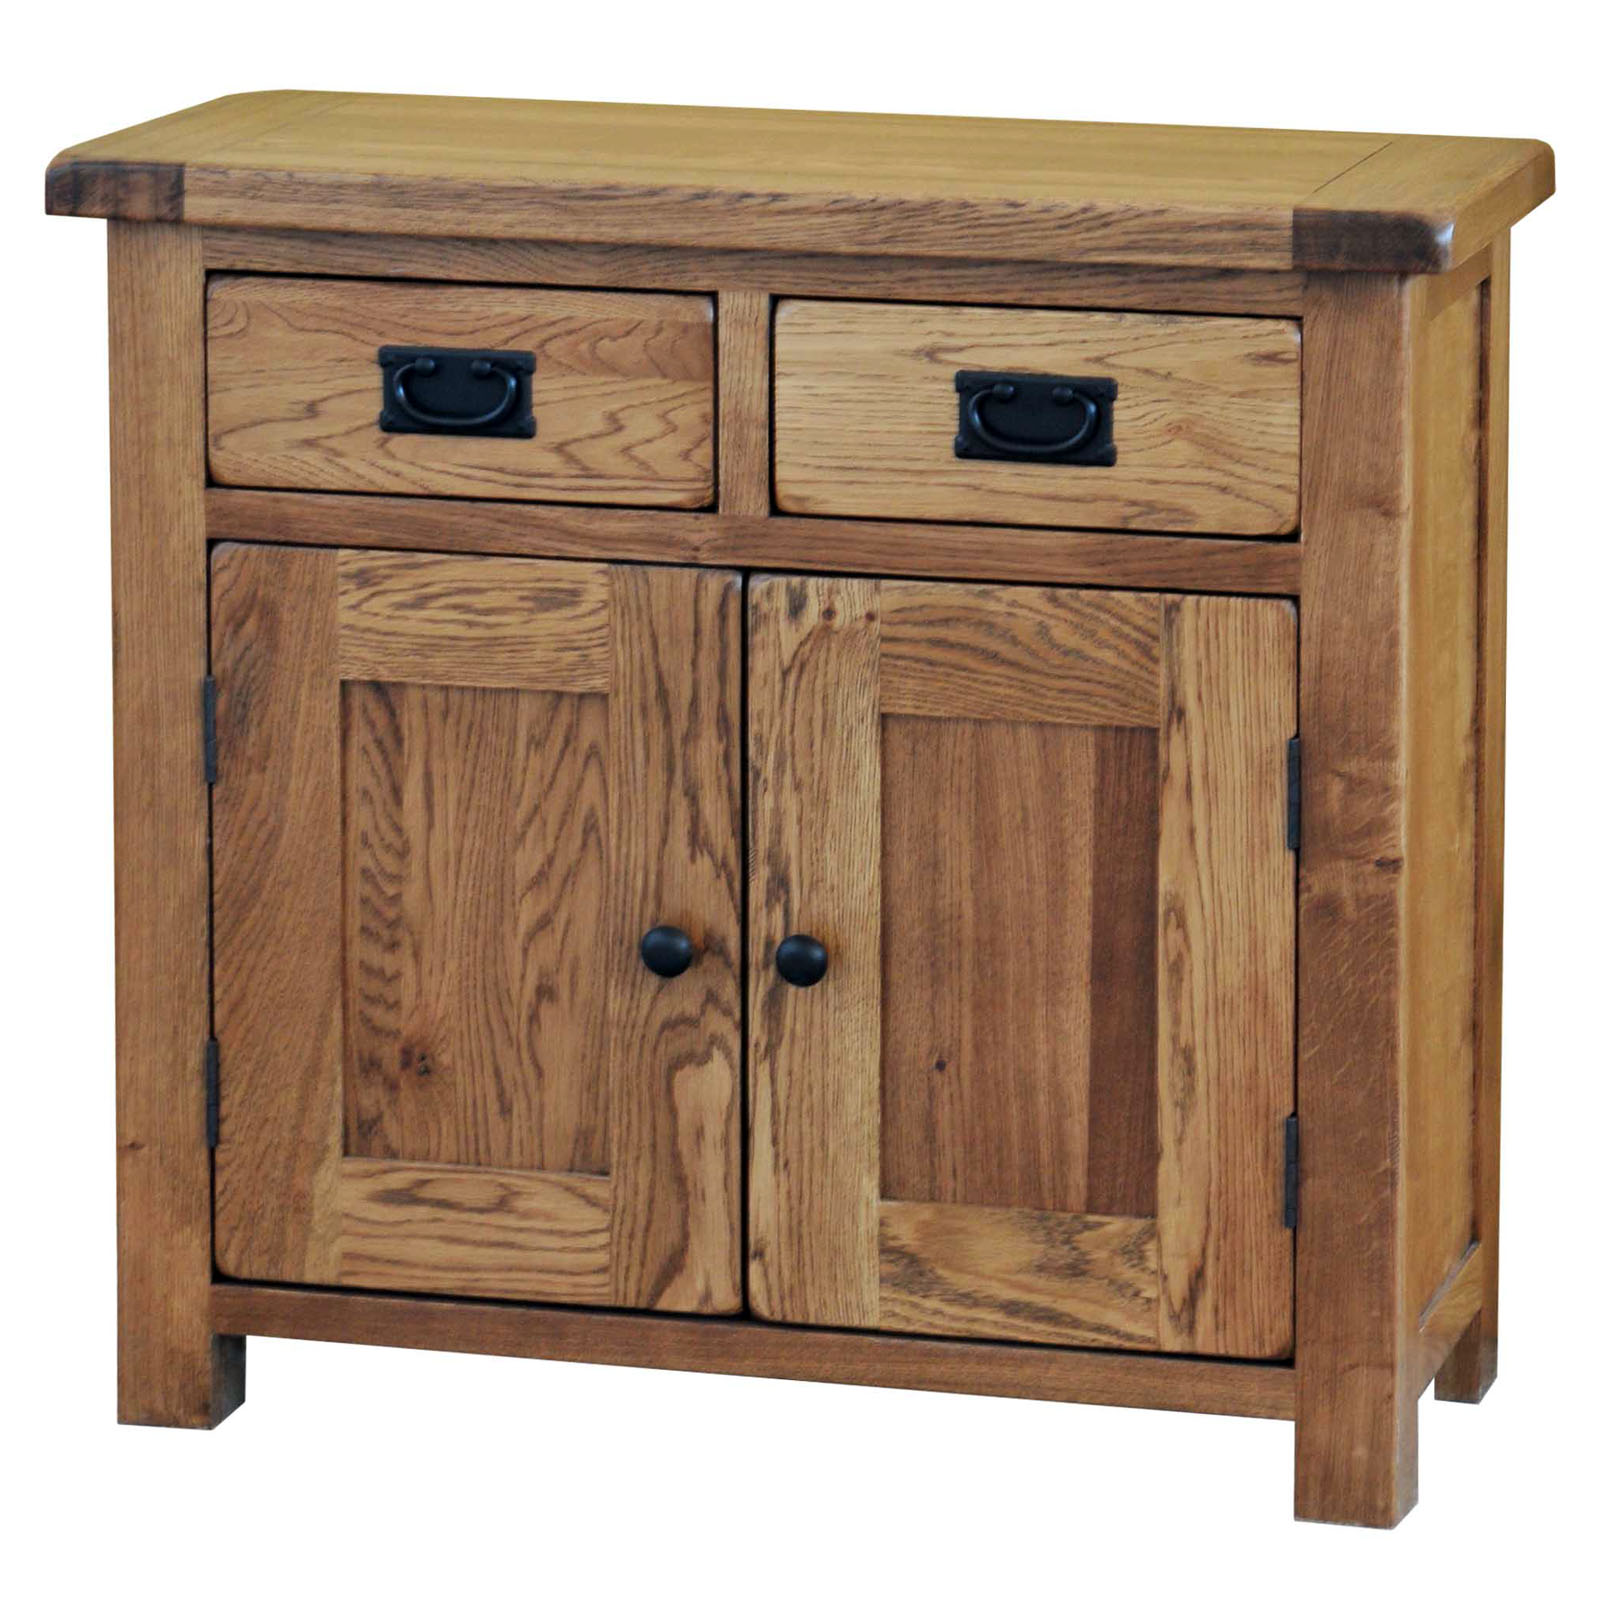 39 country oak 39 2ft6 wide small sideboard realwoods for Sideboard real